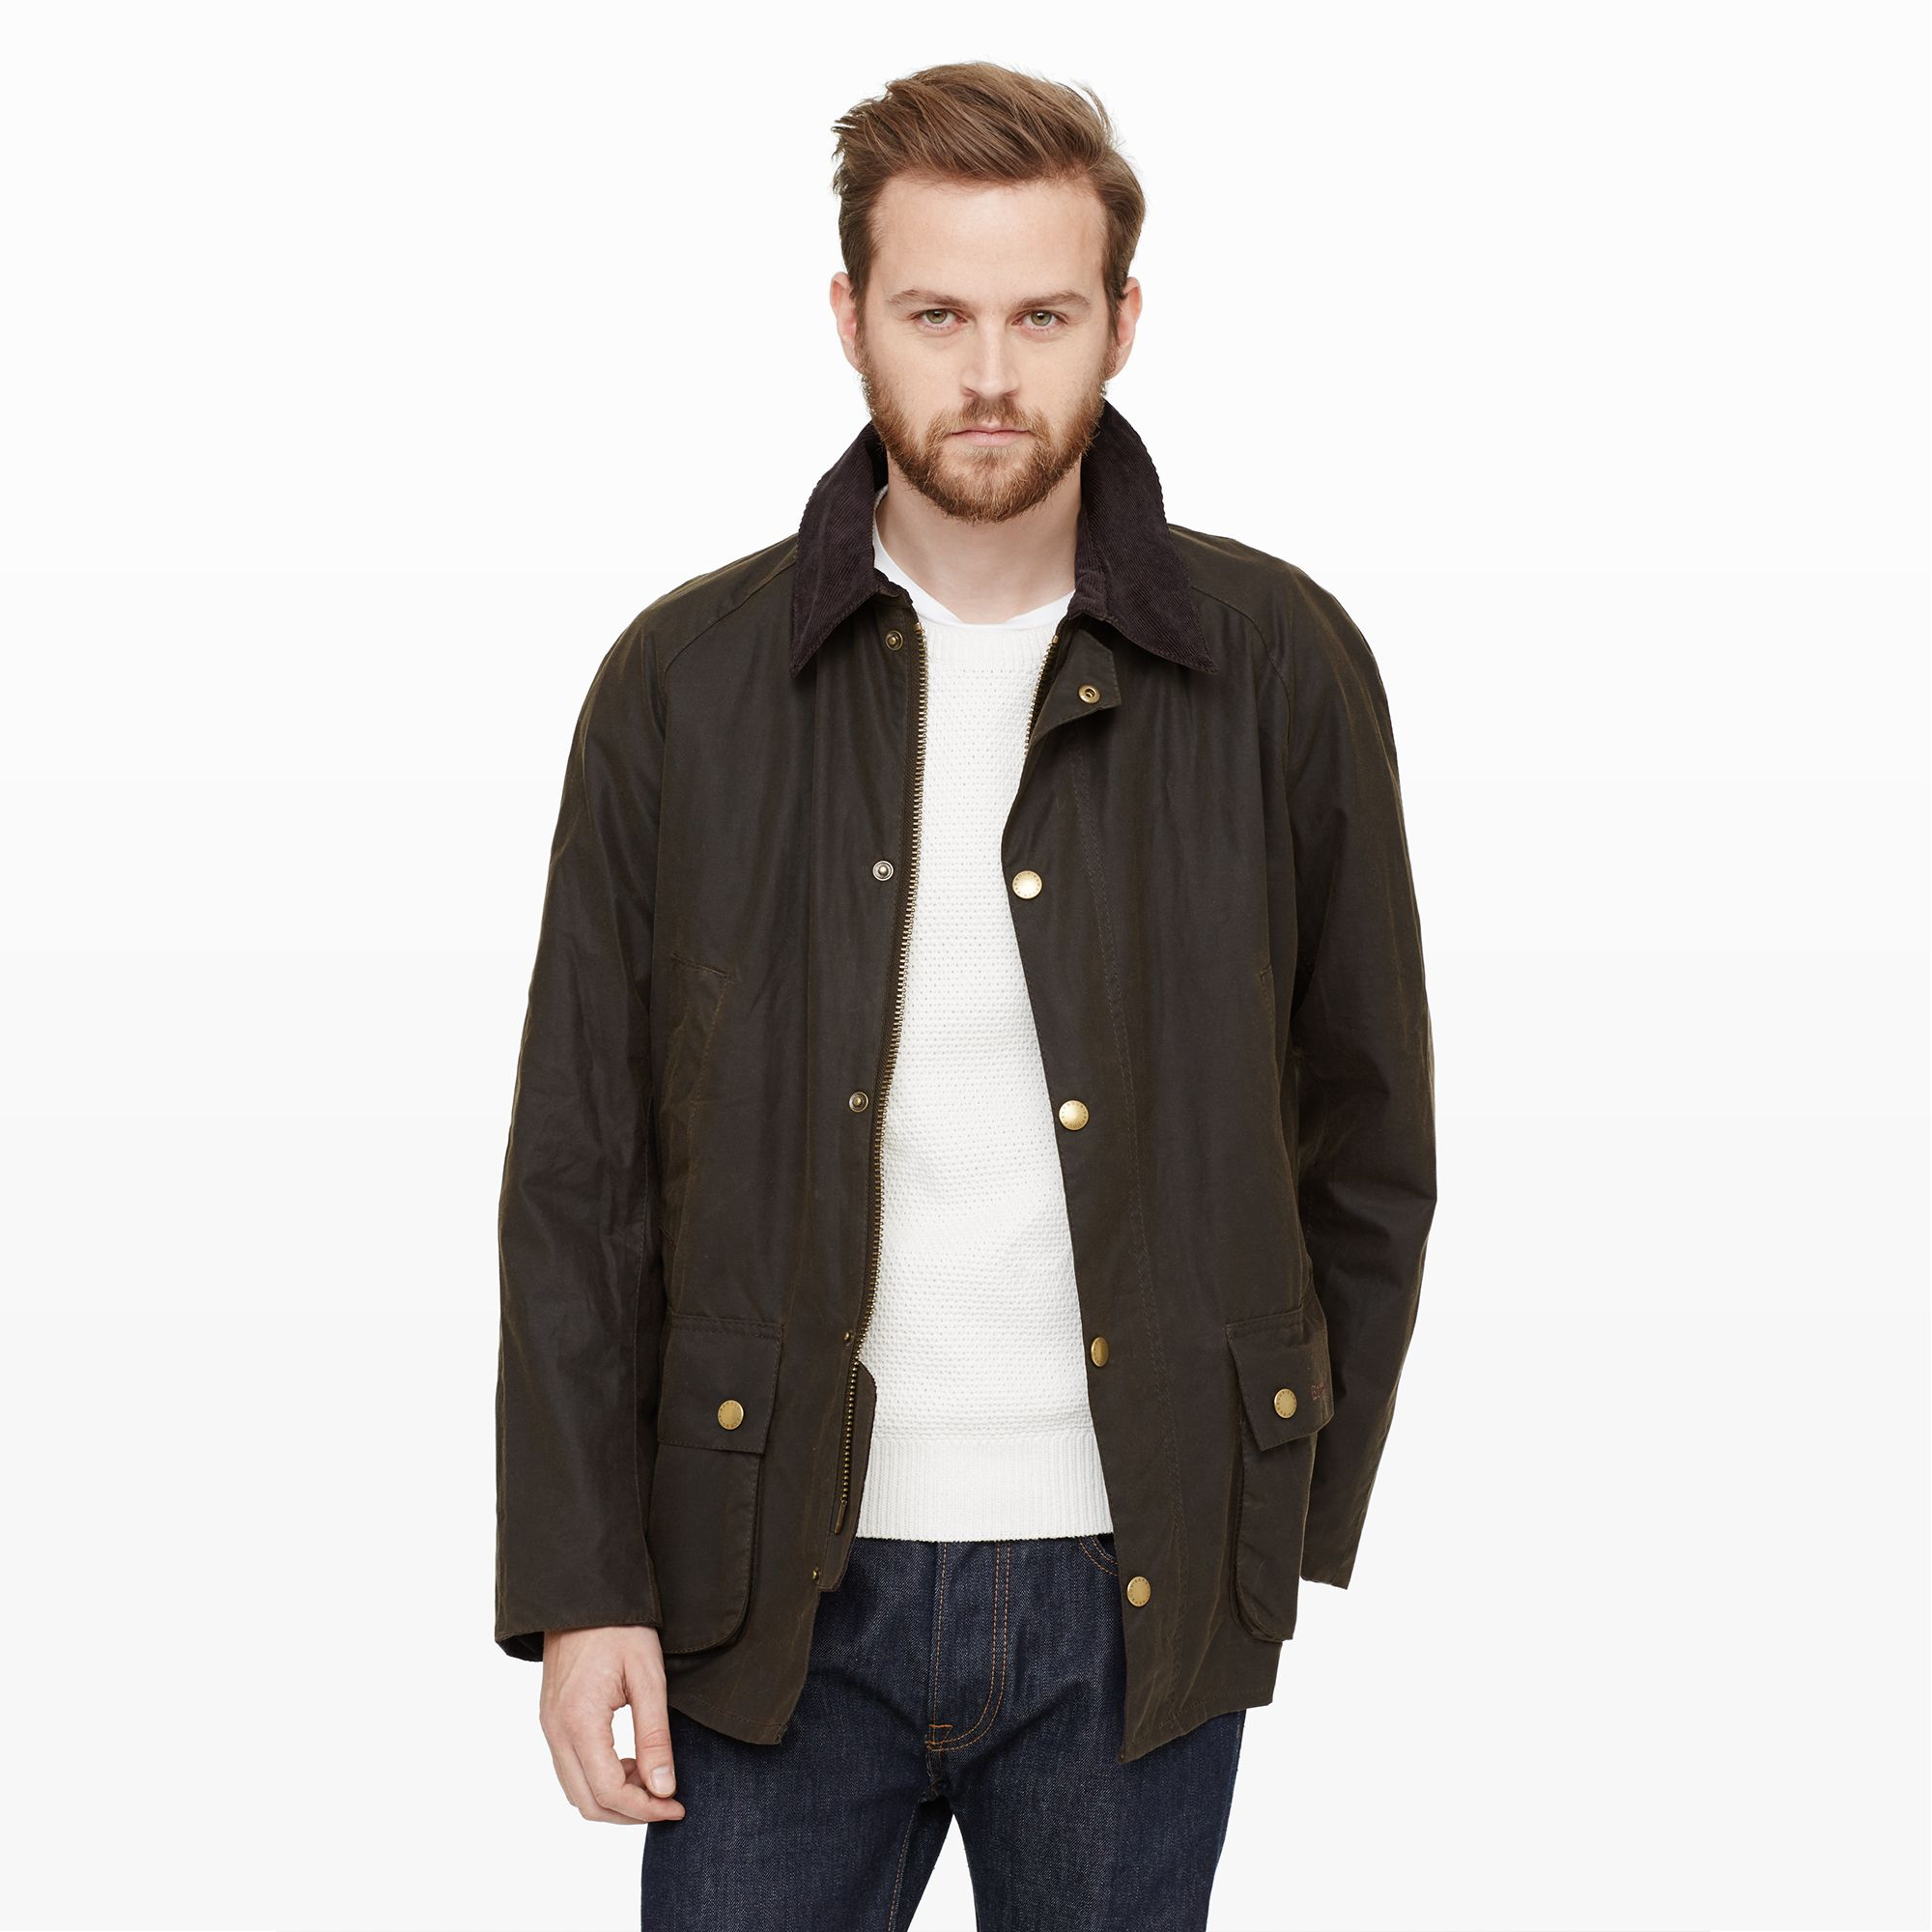 Lyst Club Monaco Barbour Ashby Jacket In Green For Men